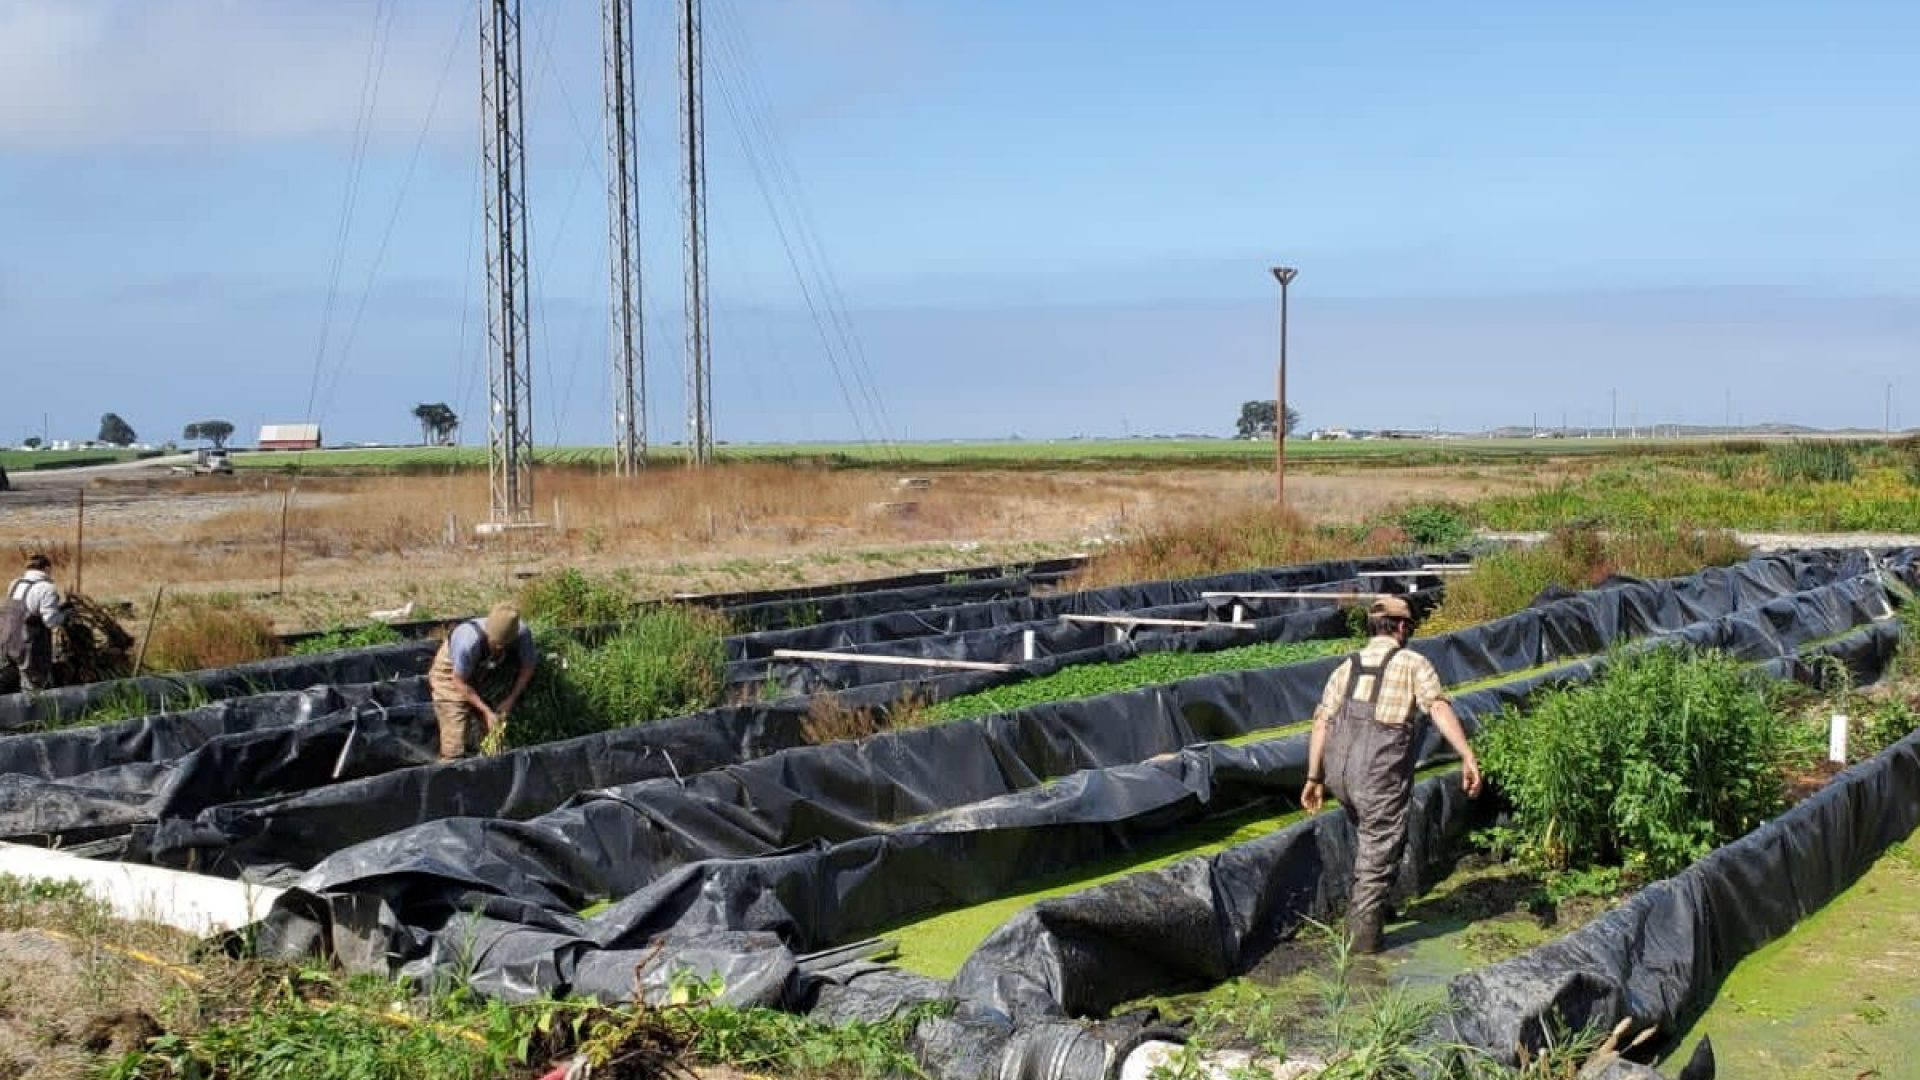 CC&R crewmembers working on a bioreactor that treats agricultural runoff.